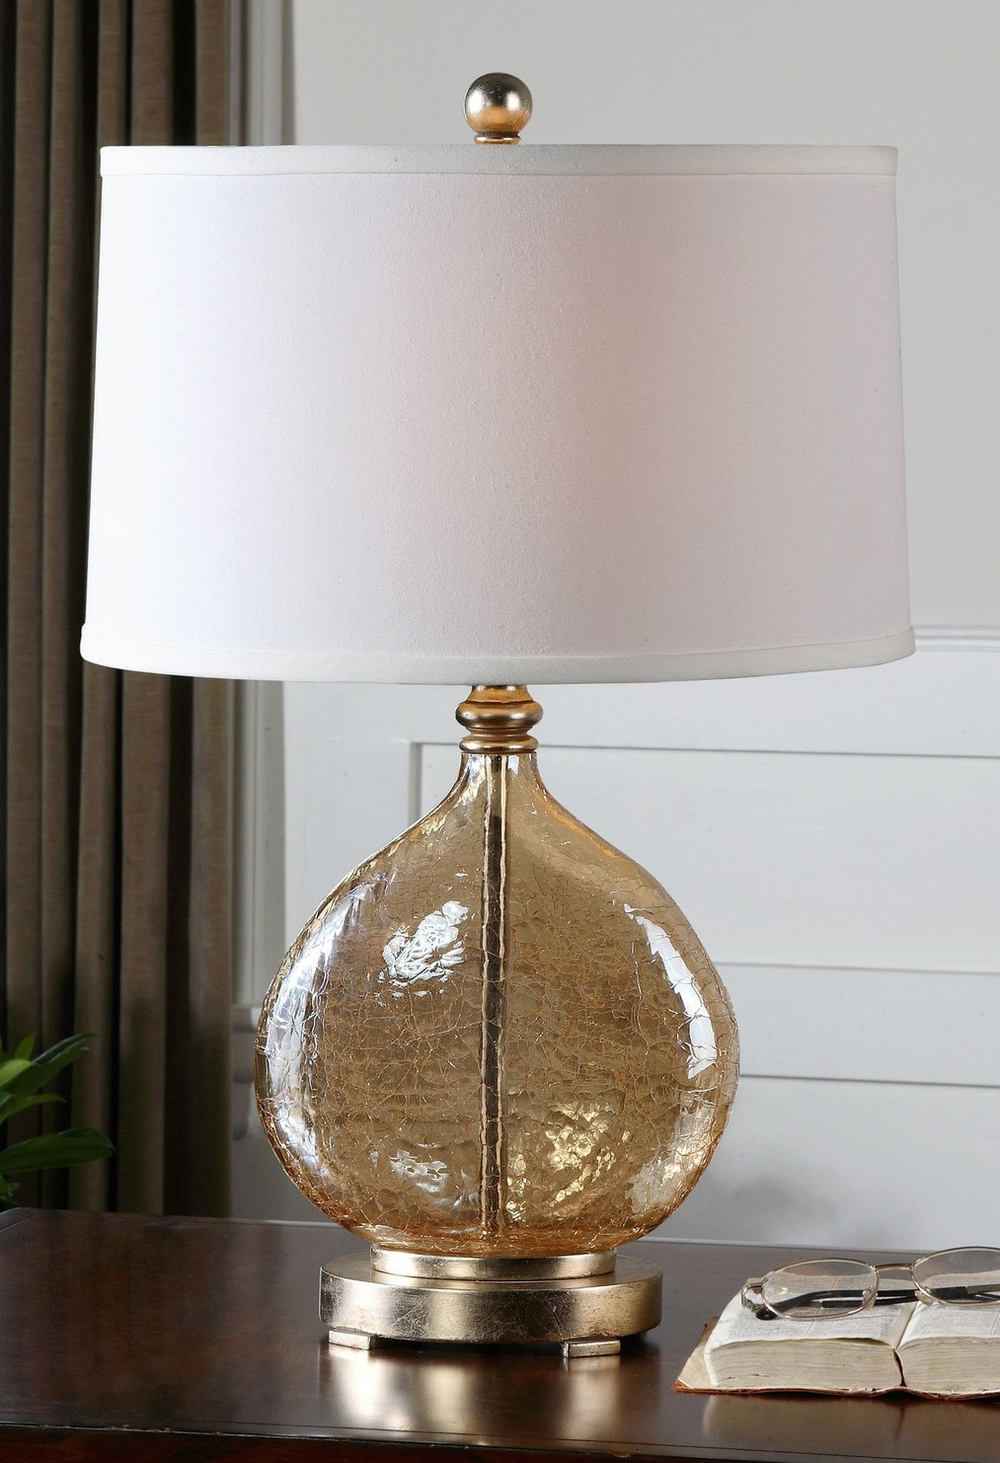 Arielli+Table+Lamp.jpg